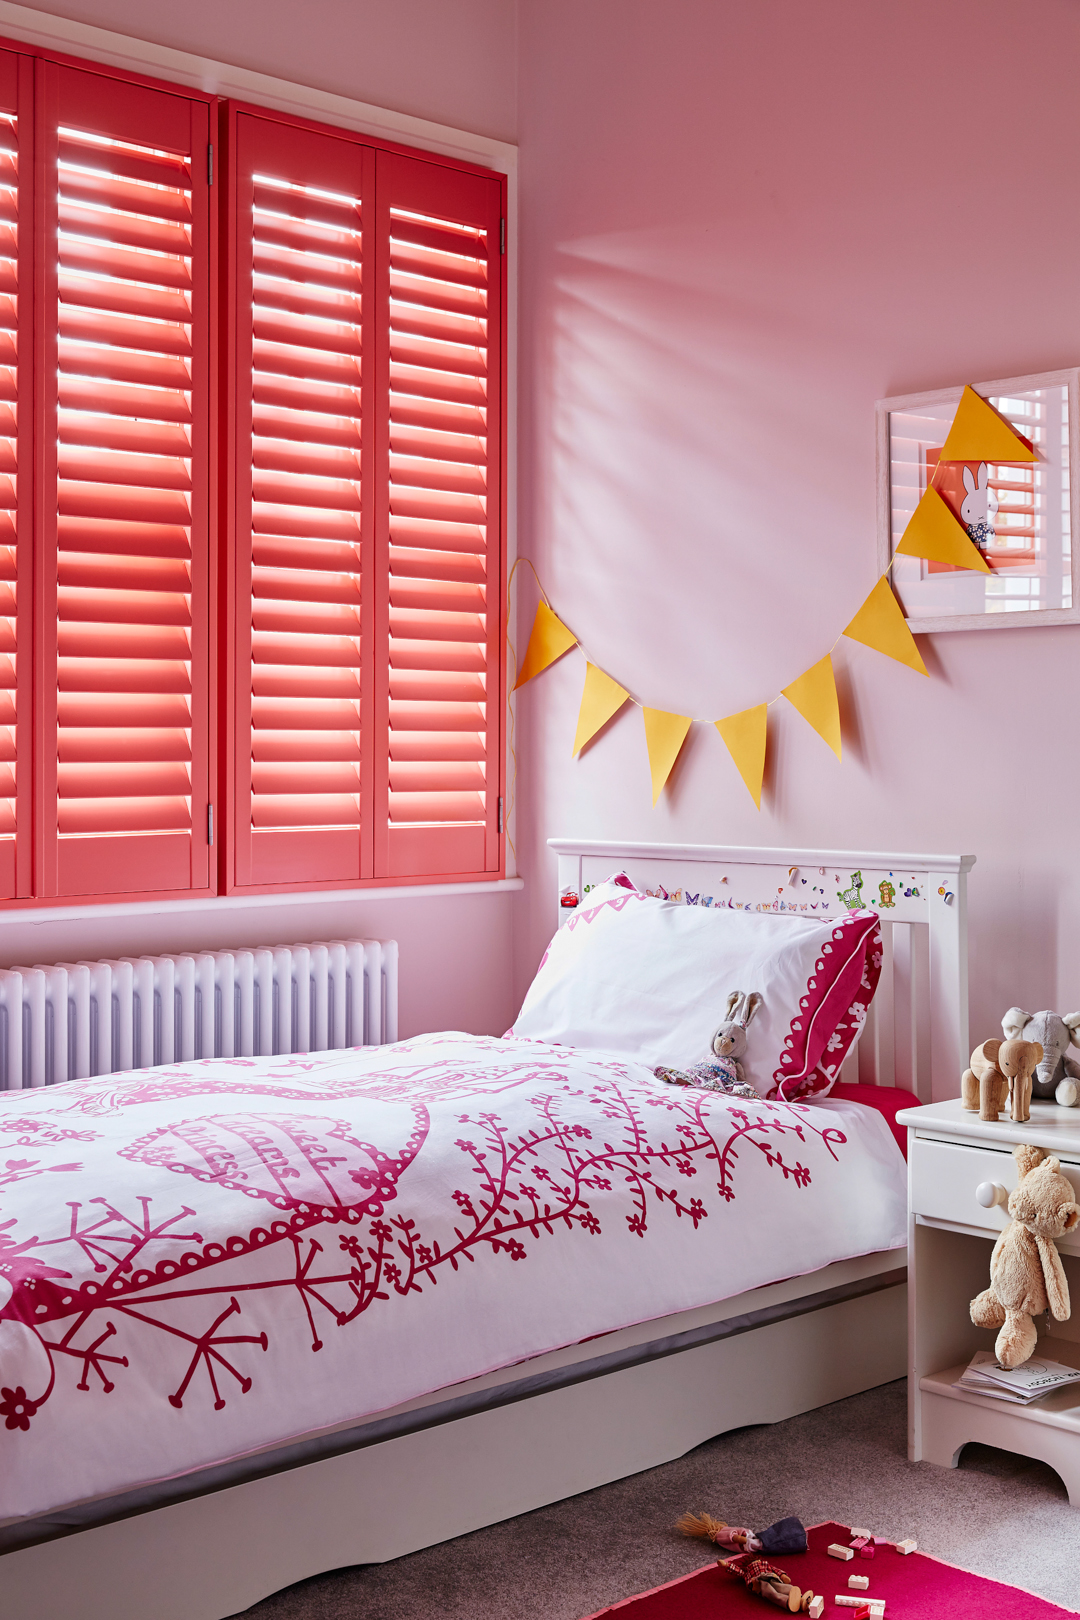 Lusting after shutters